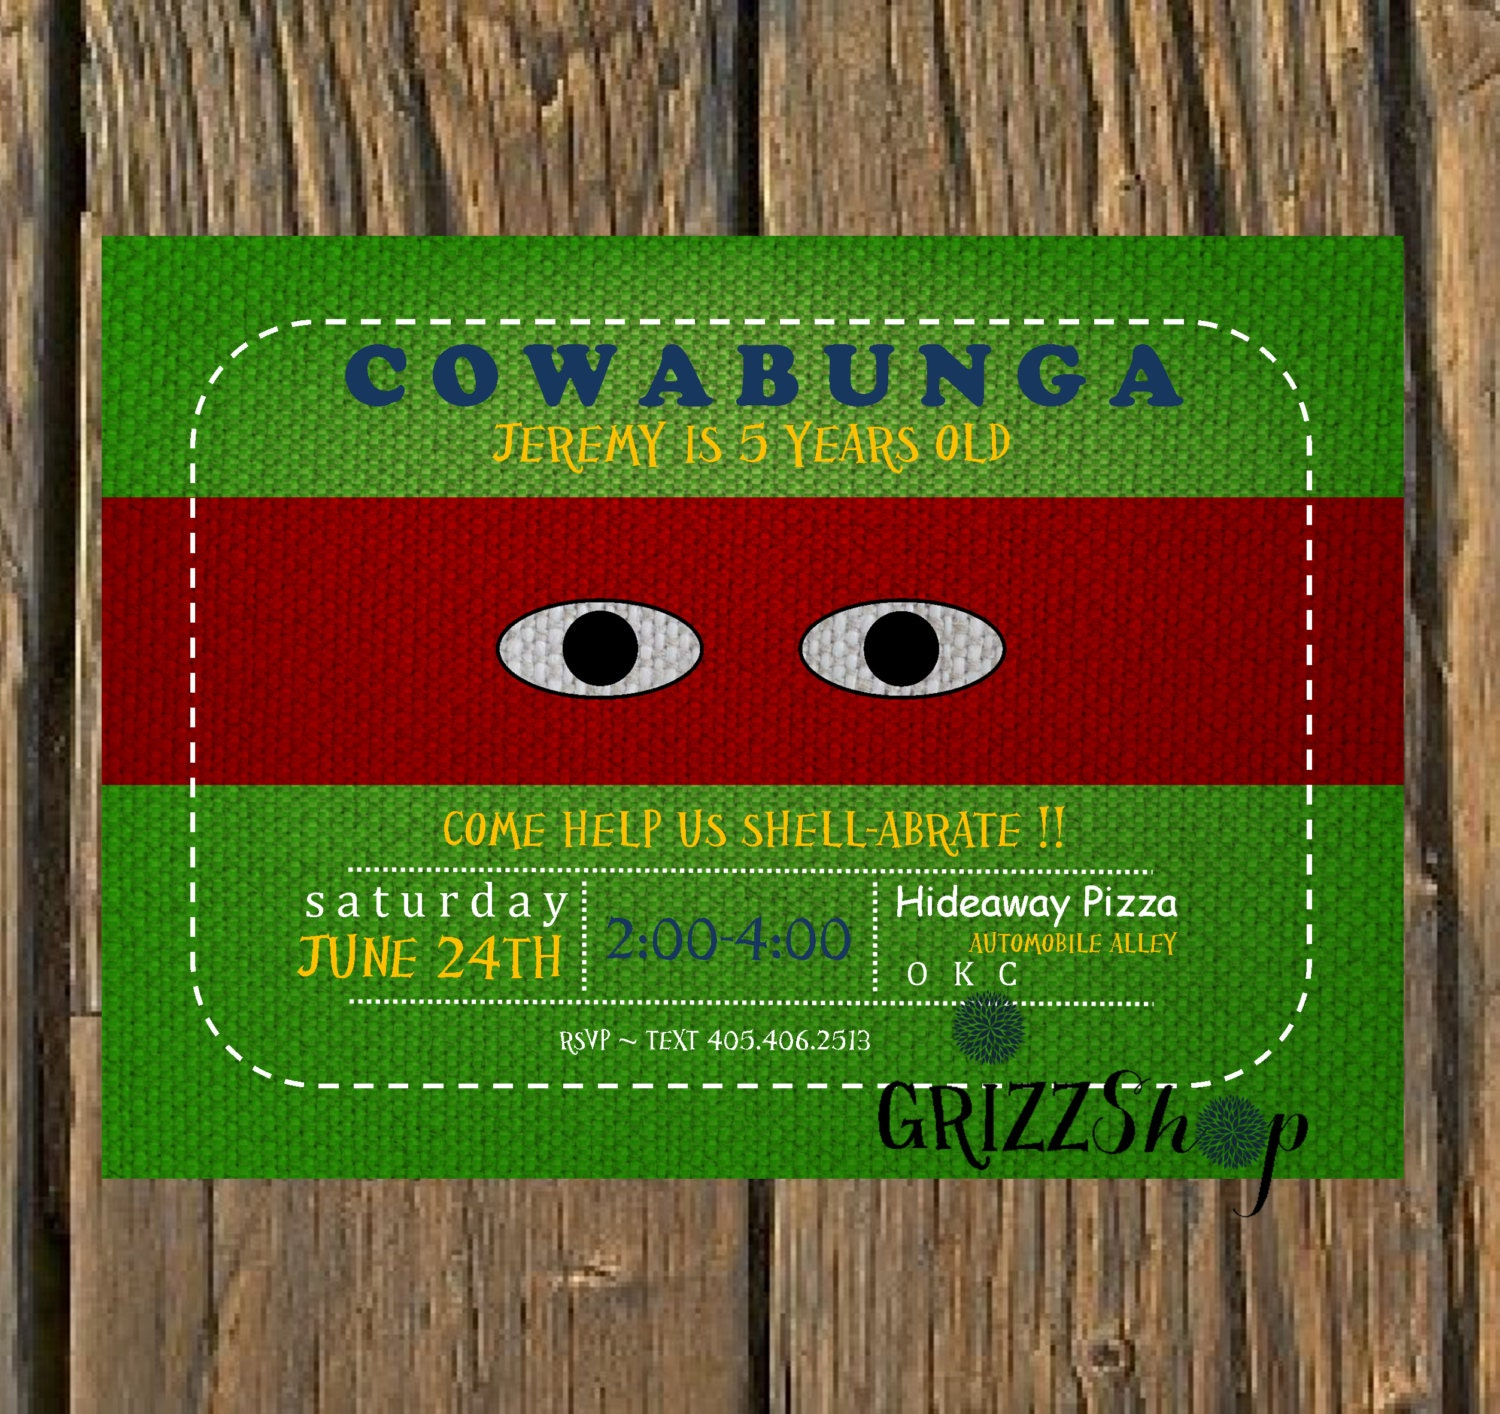 ninja turtle birthday invitation by grizzshop on etsy, Birthday invitations